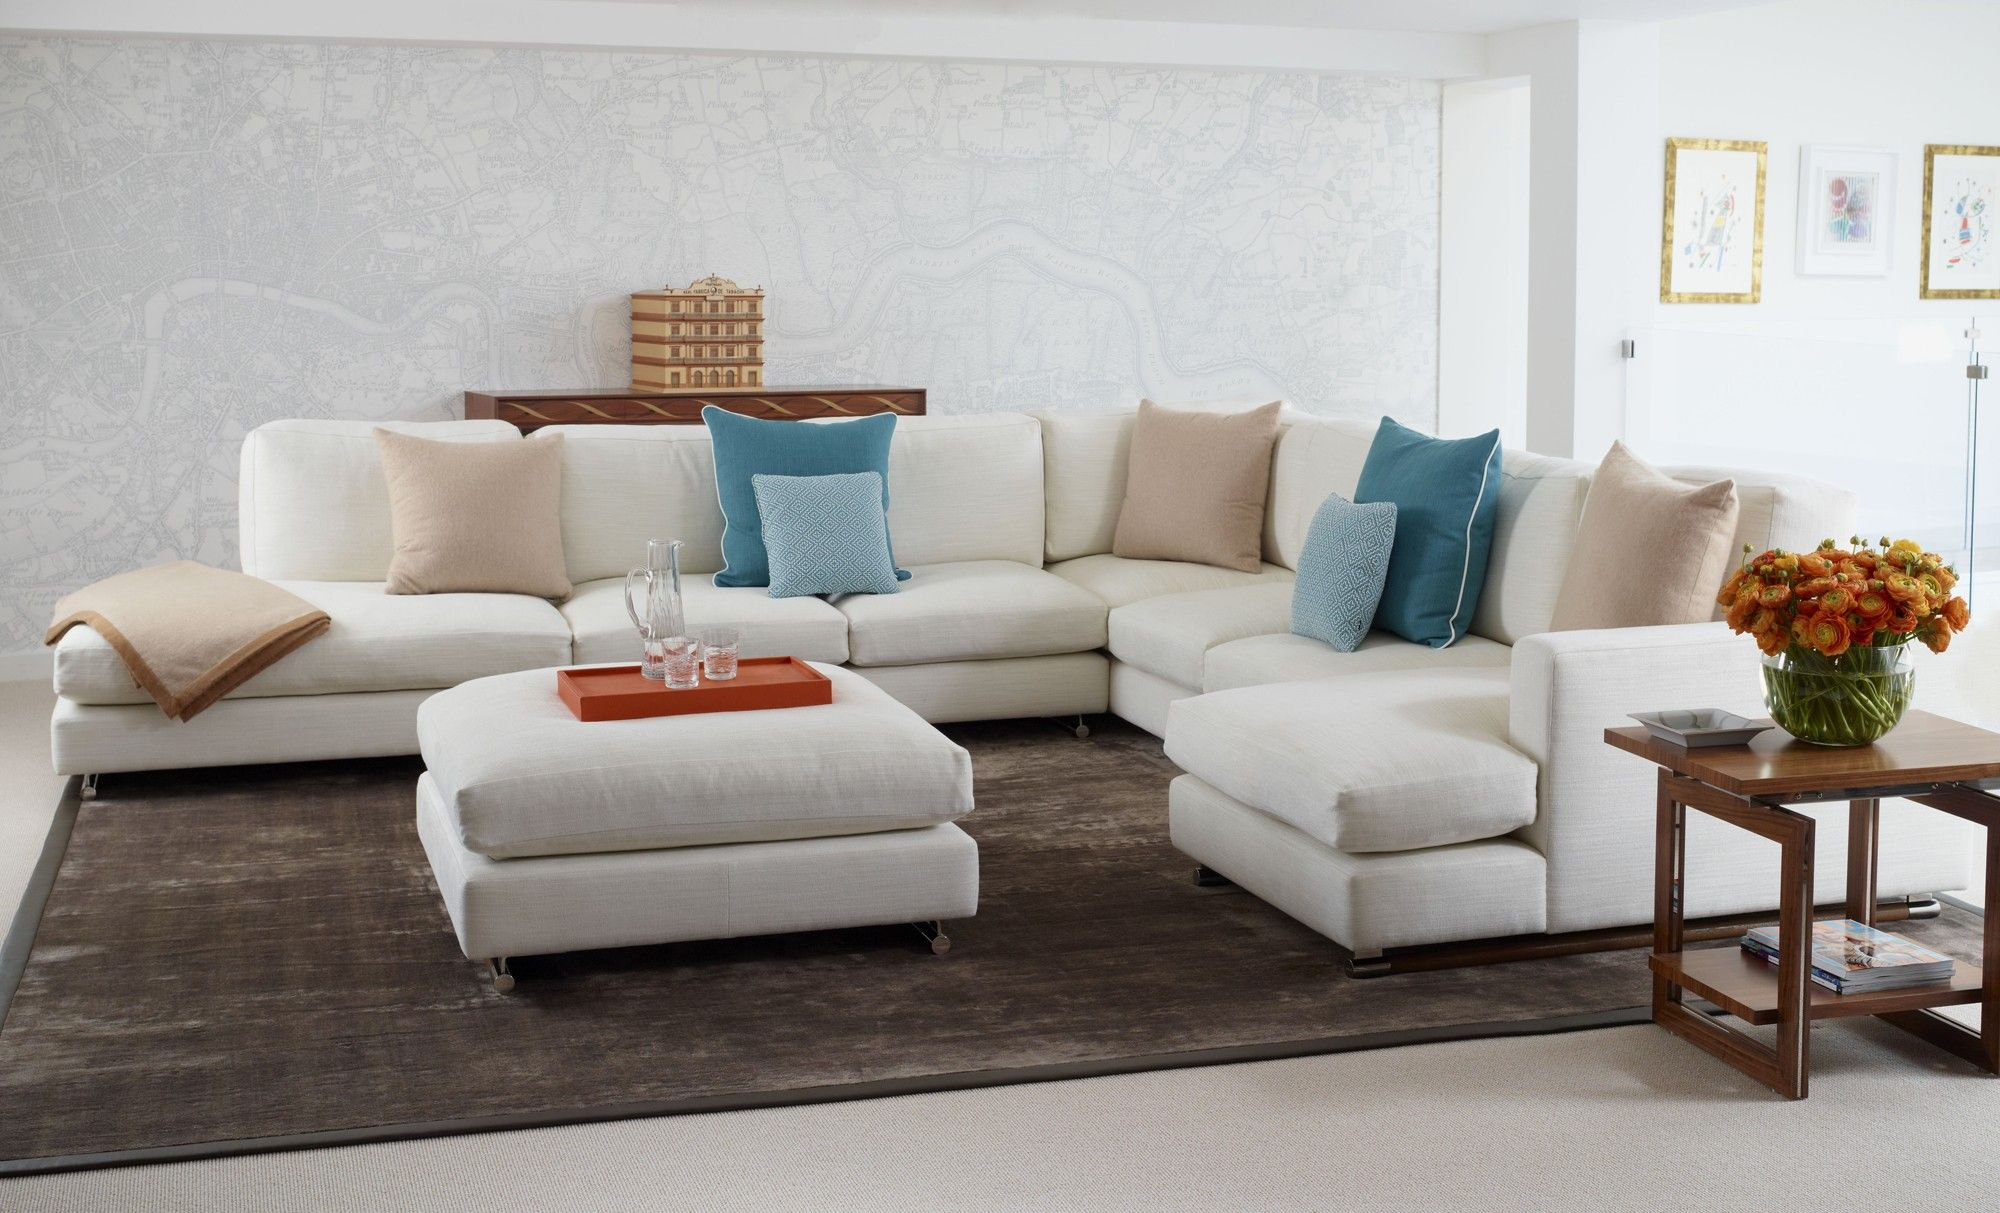 About The Price Of Modular Sofas | Furniture From Turkey